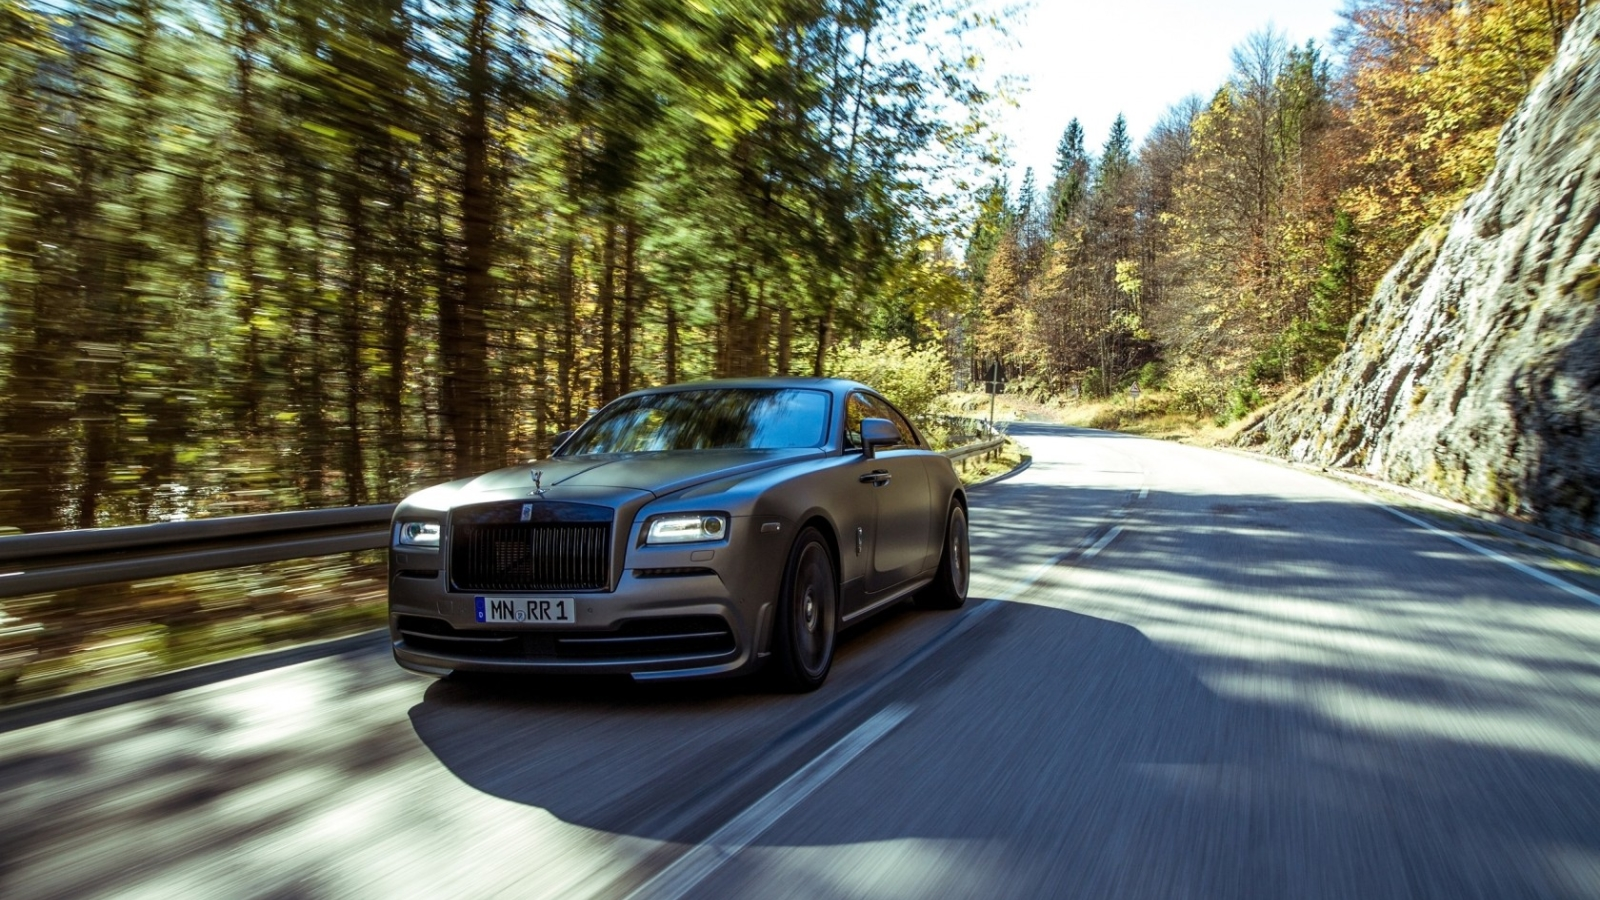 Rolls Royce, Wraith, Spofec, Full HD Wallpaper